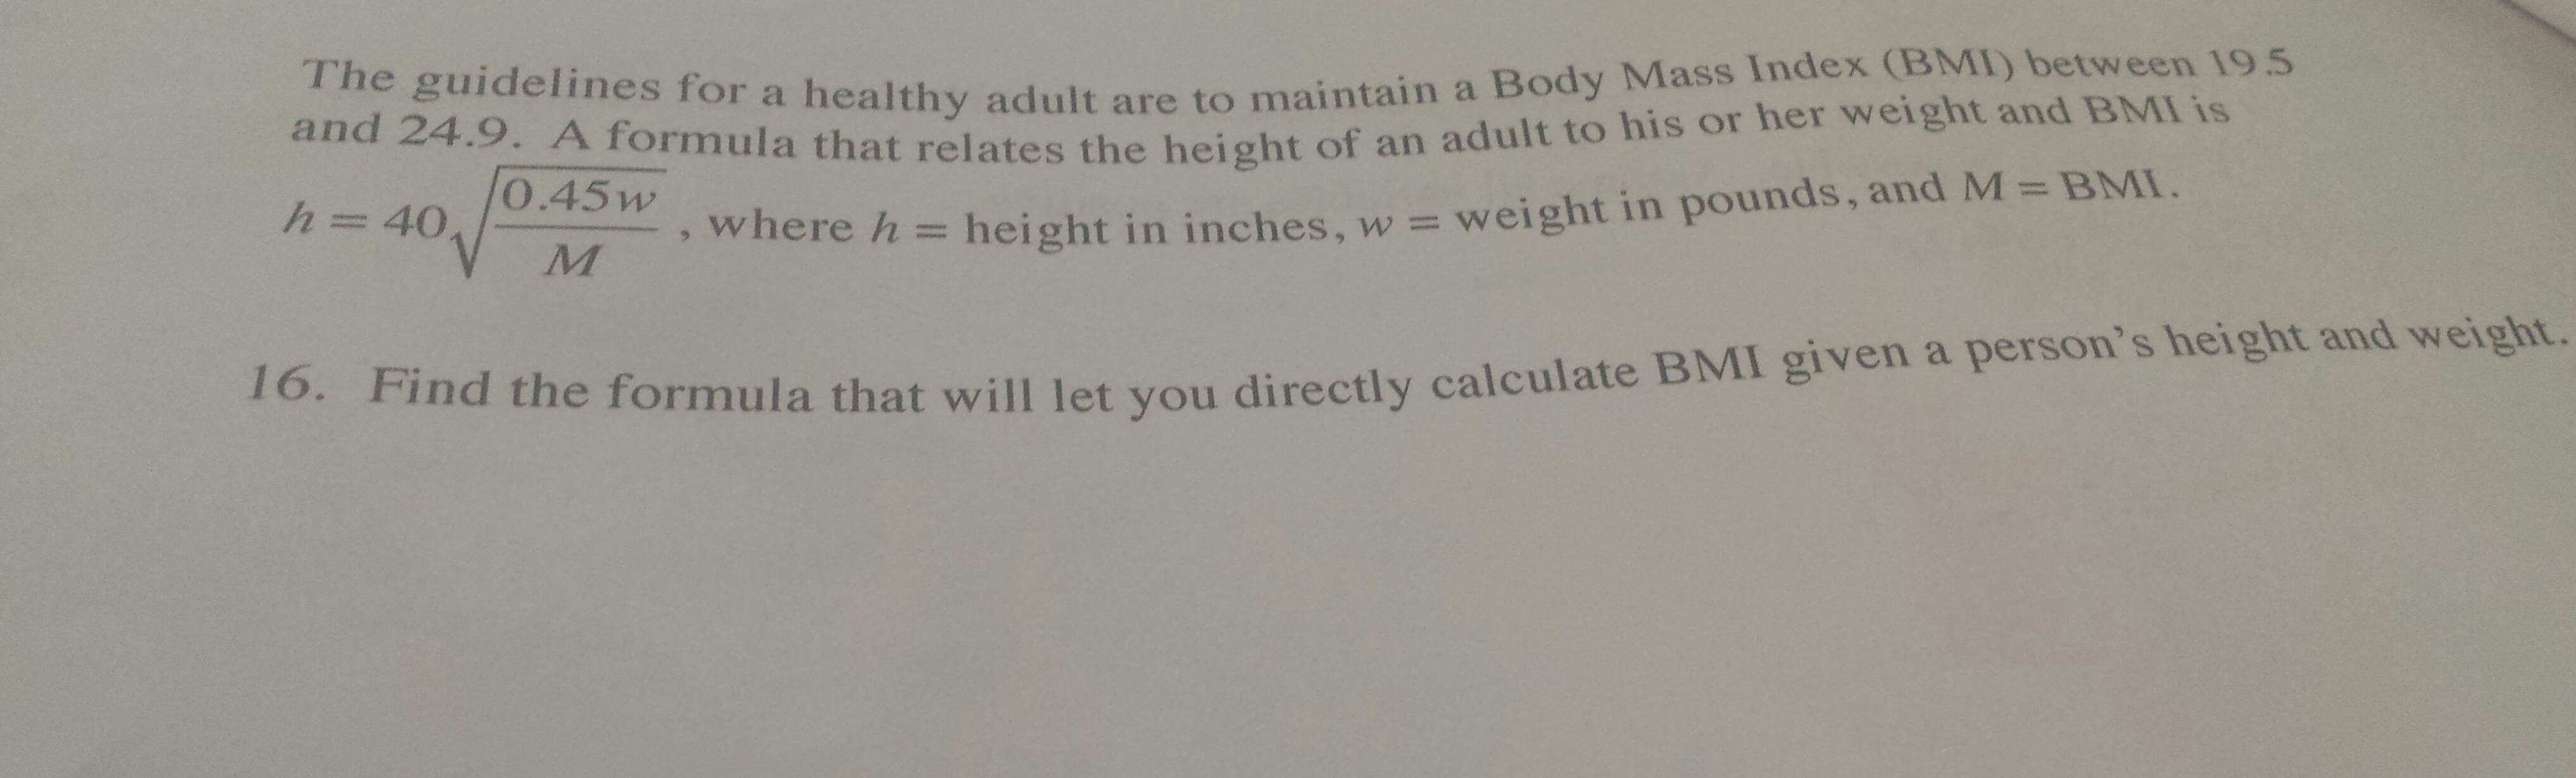 Find The Formula That Will Let U Directly Calculate Bmi Given A Persons  Height And Weight